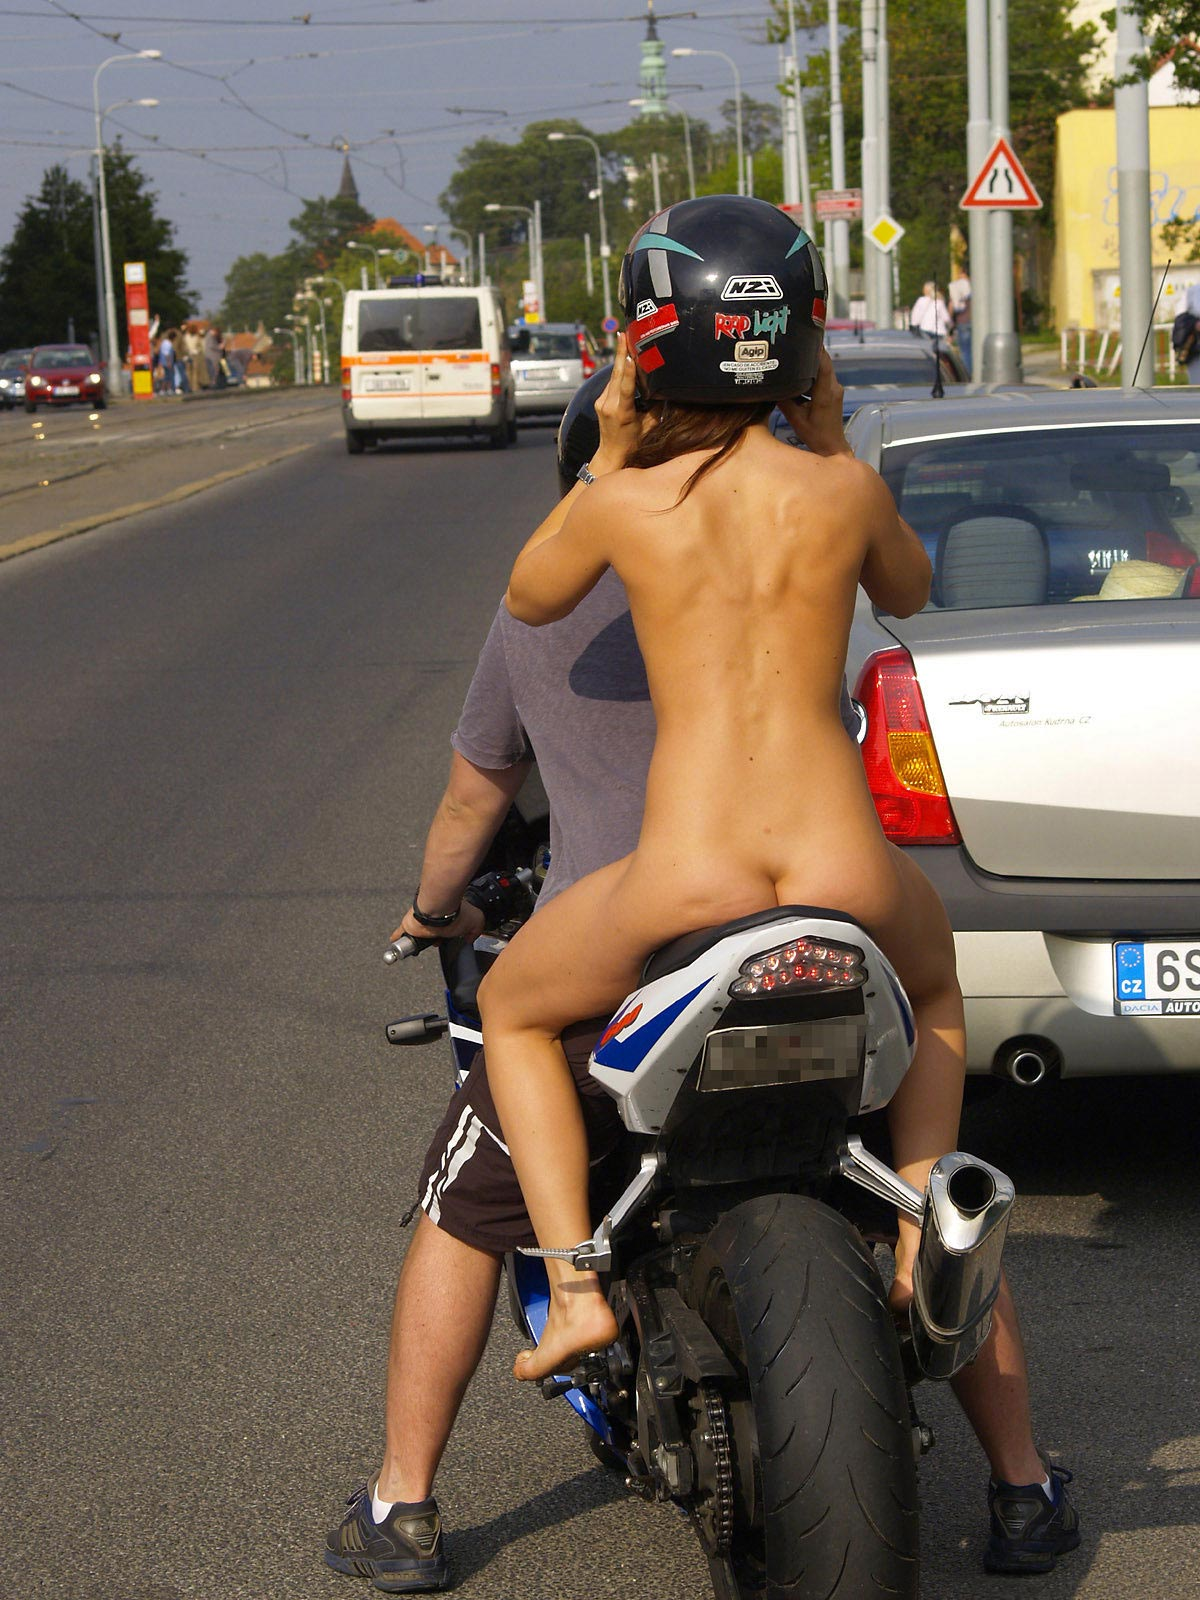 Full throttle girls that are naked, moms give blow jobs